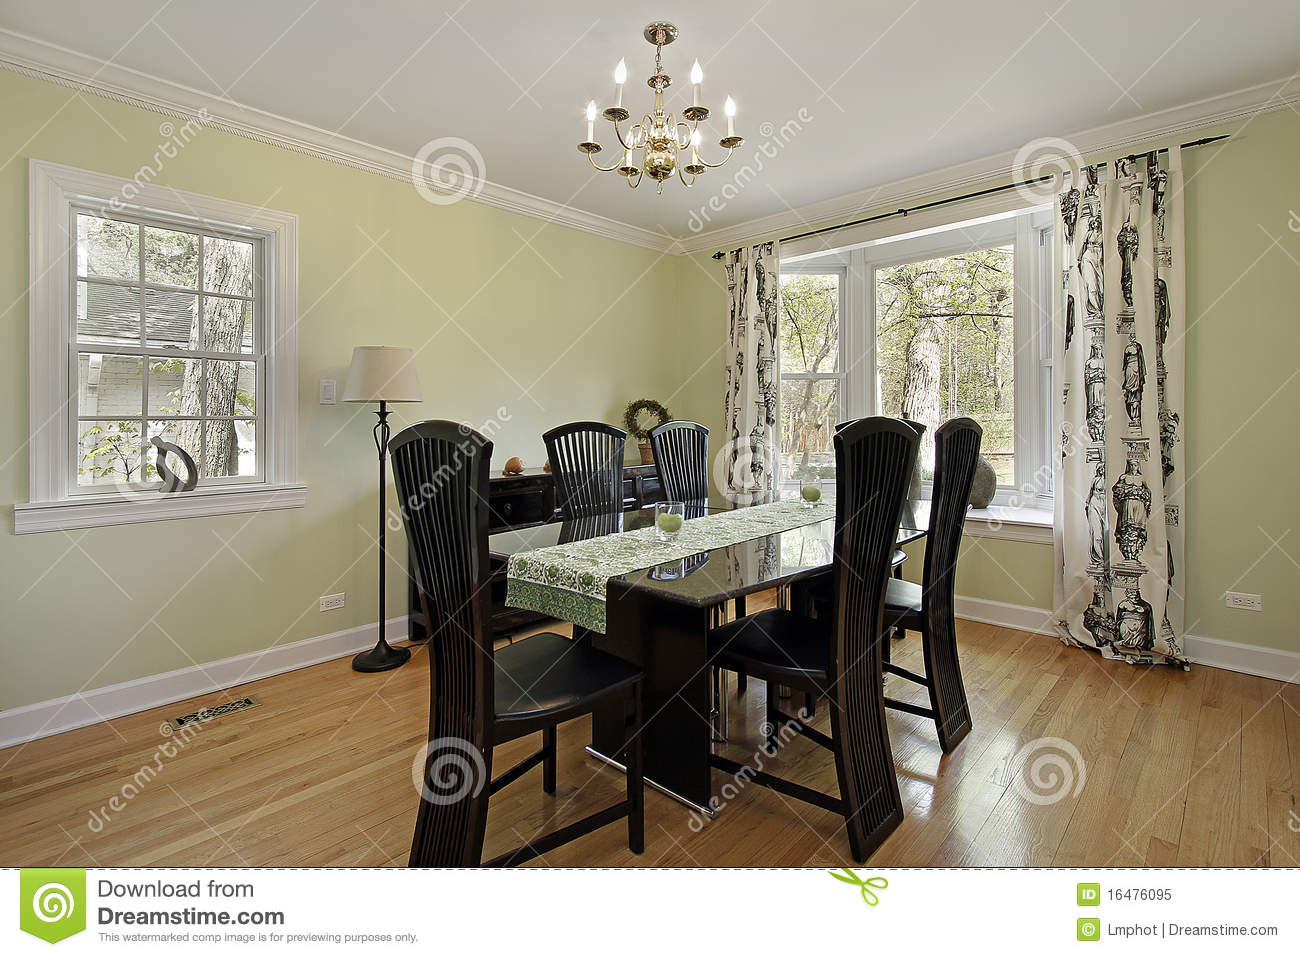 Dining room with light green walls royalty free stock for Light green dining room